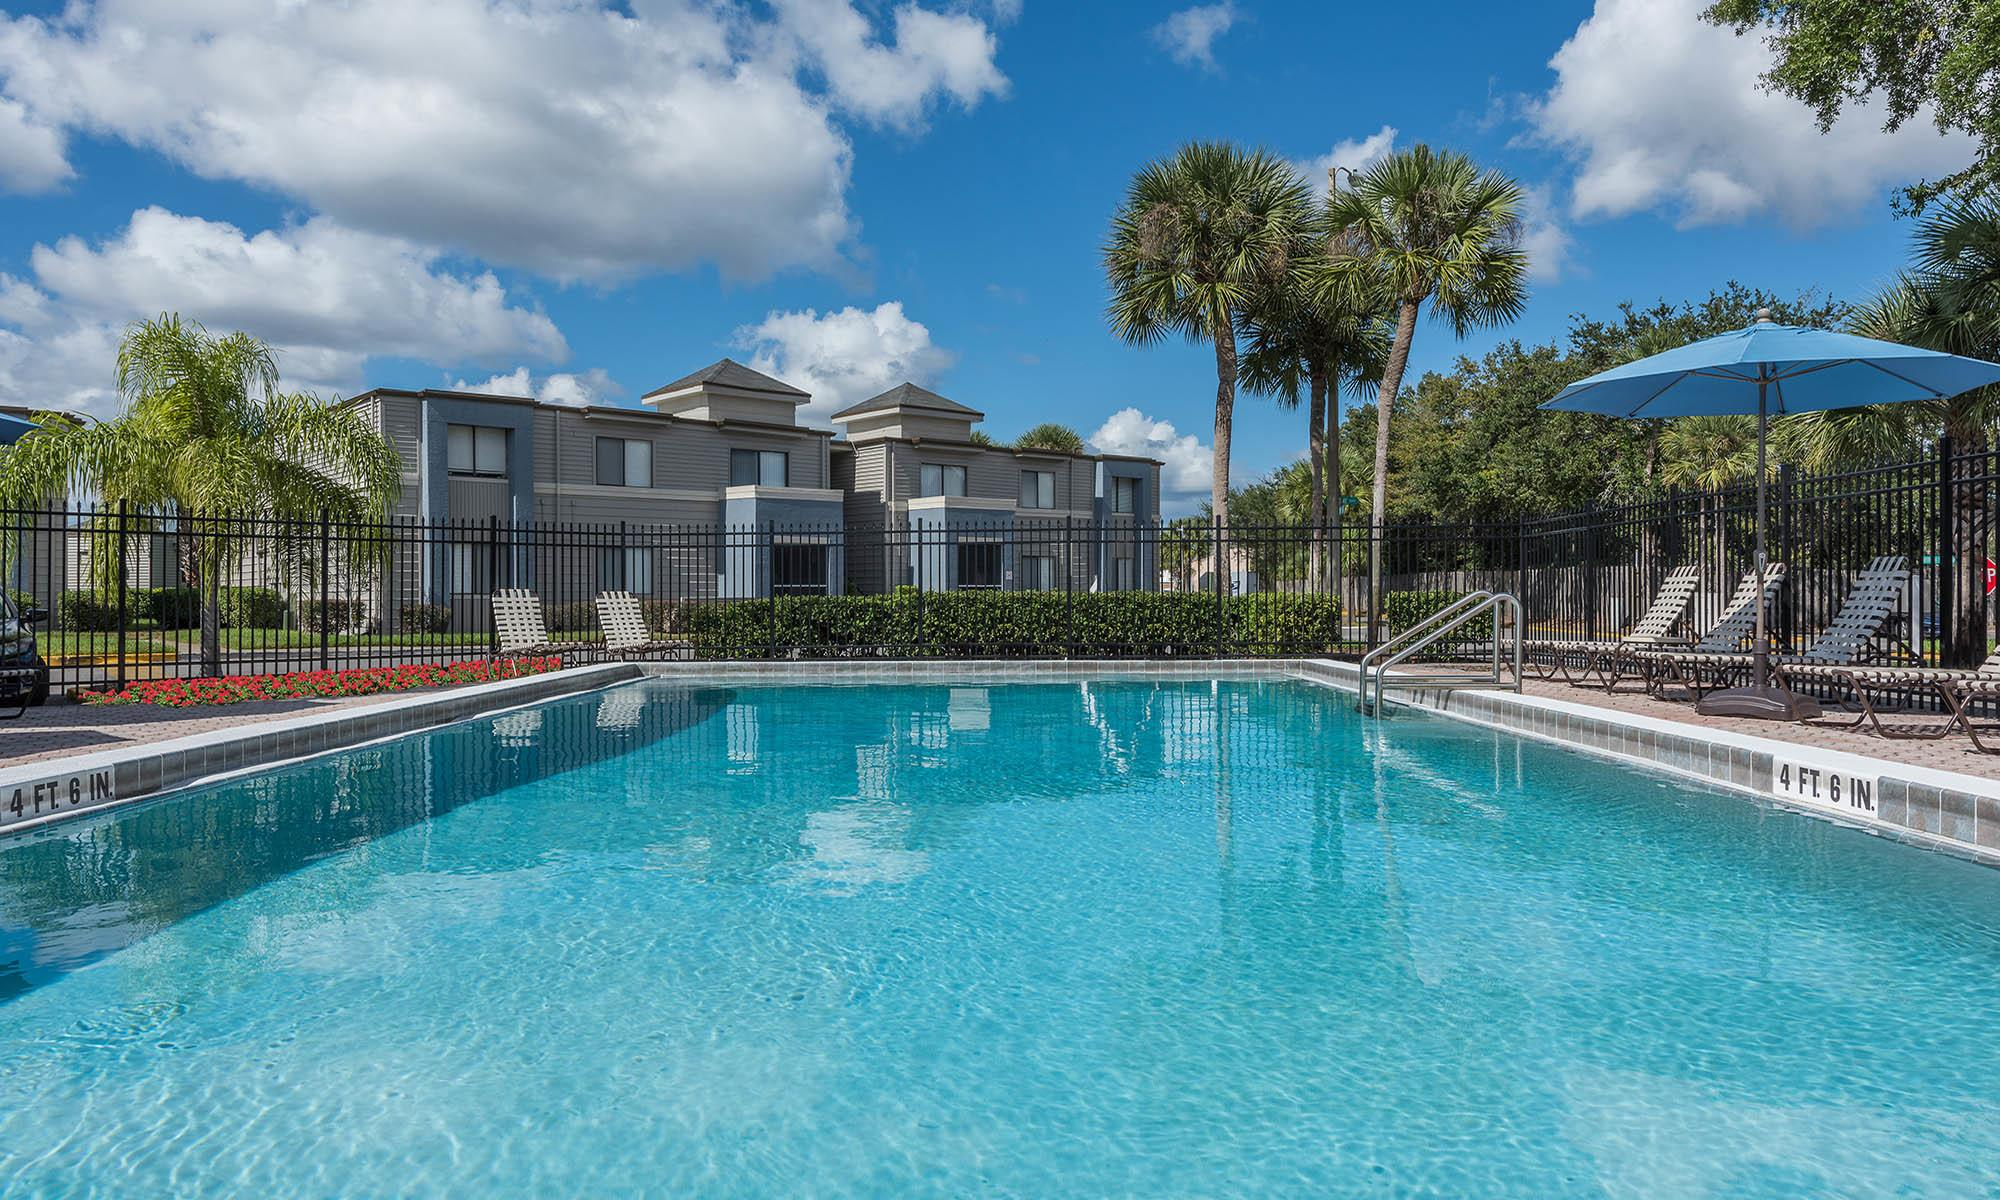 Swimming pool at our apartments in Fern Park, FL